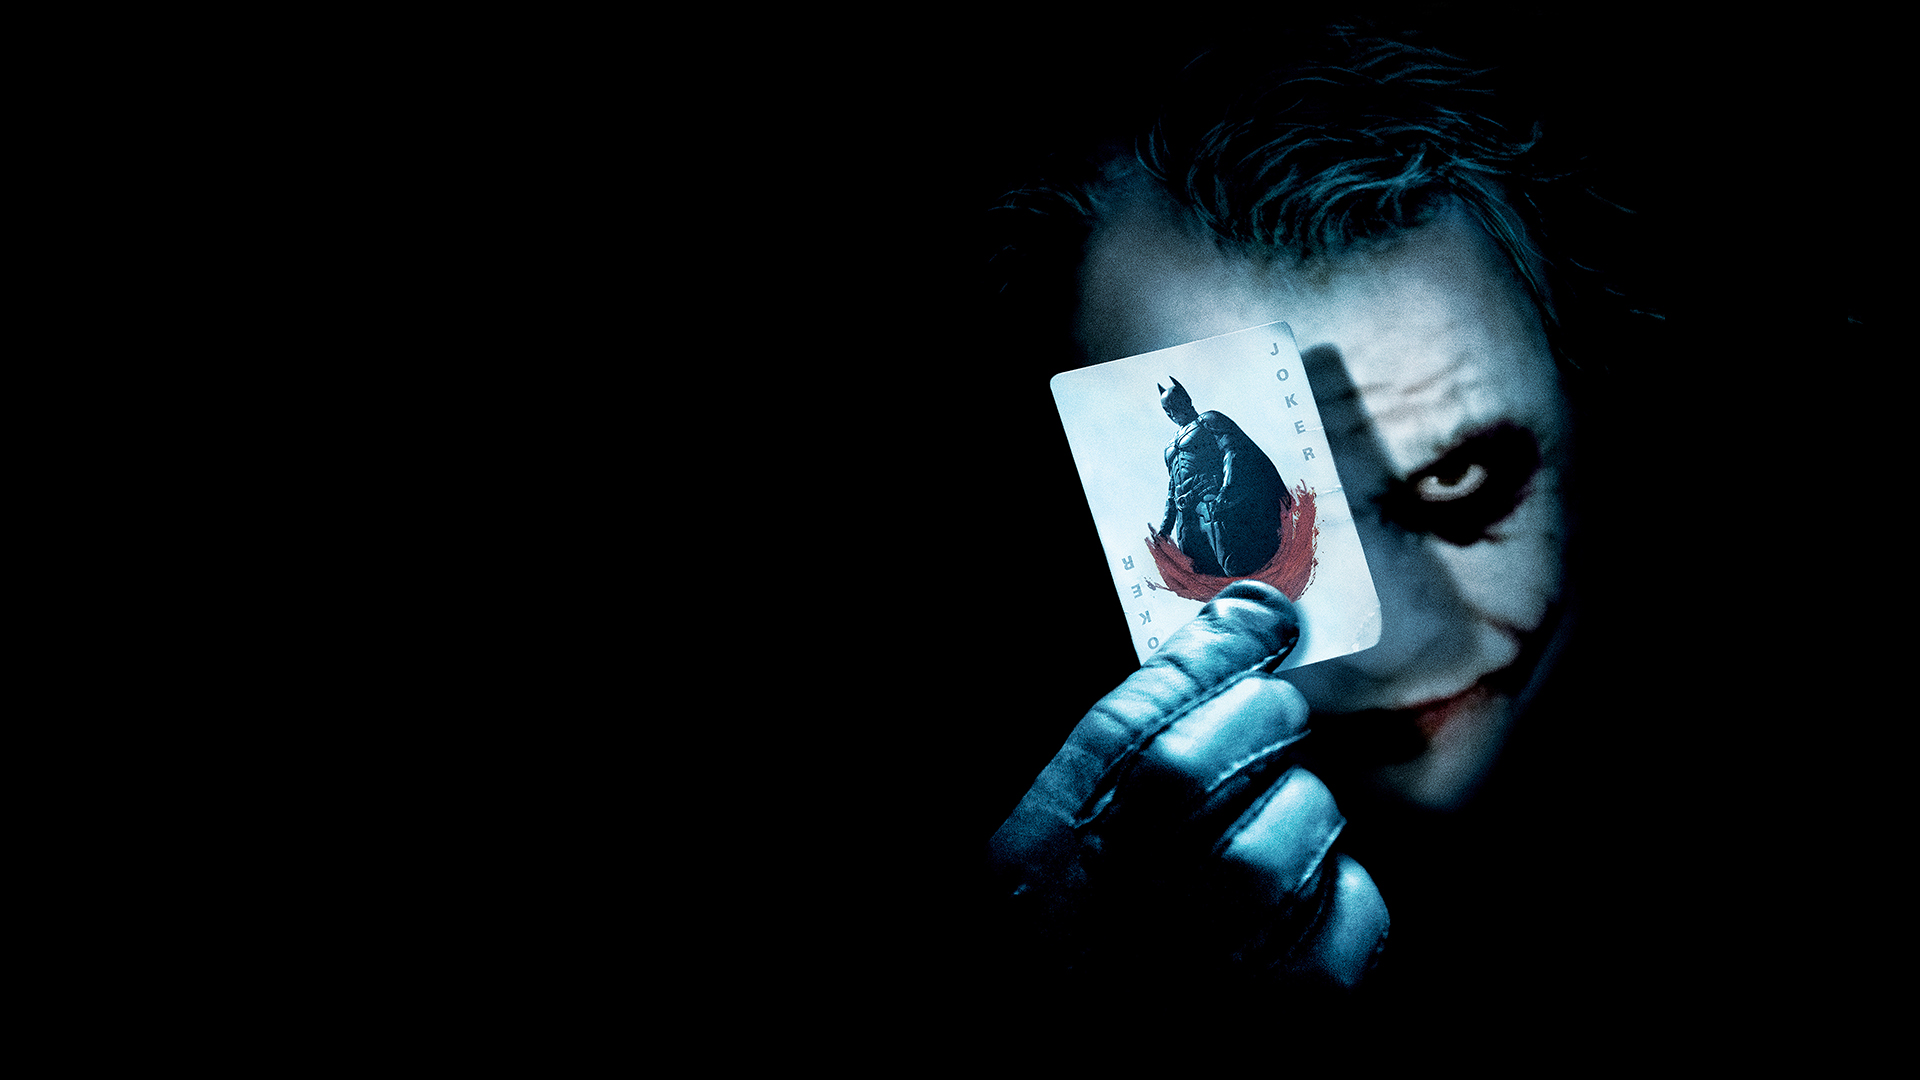 Joker Quotes Hd Wallpapers For Mobile Download Movie Poster Wallpaper Gallery